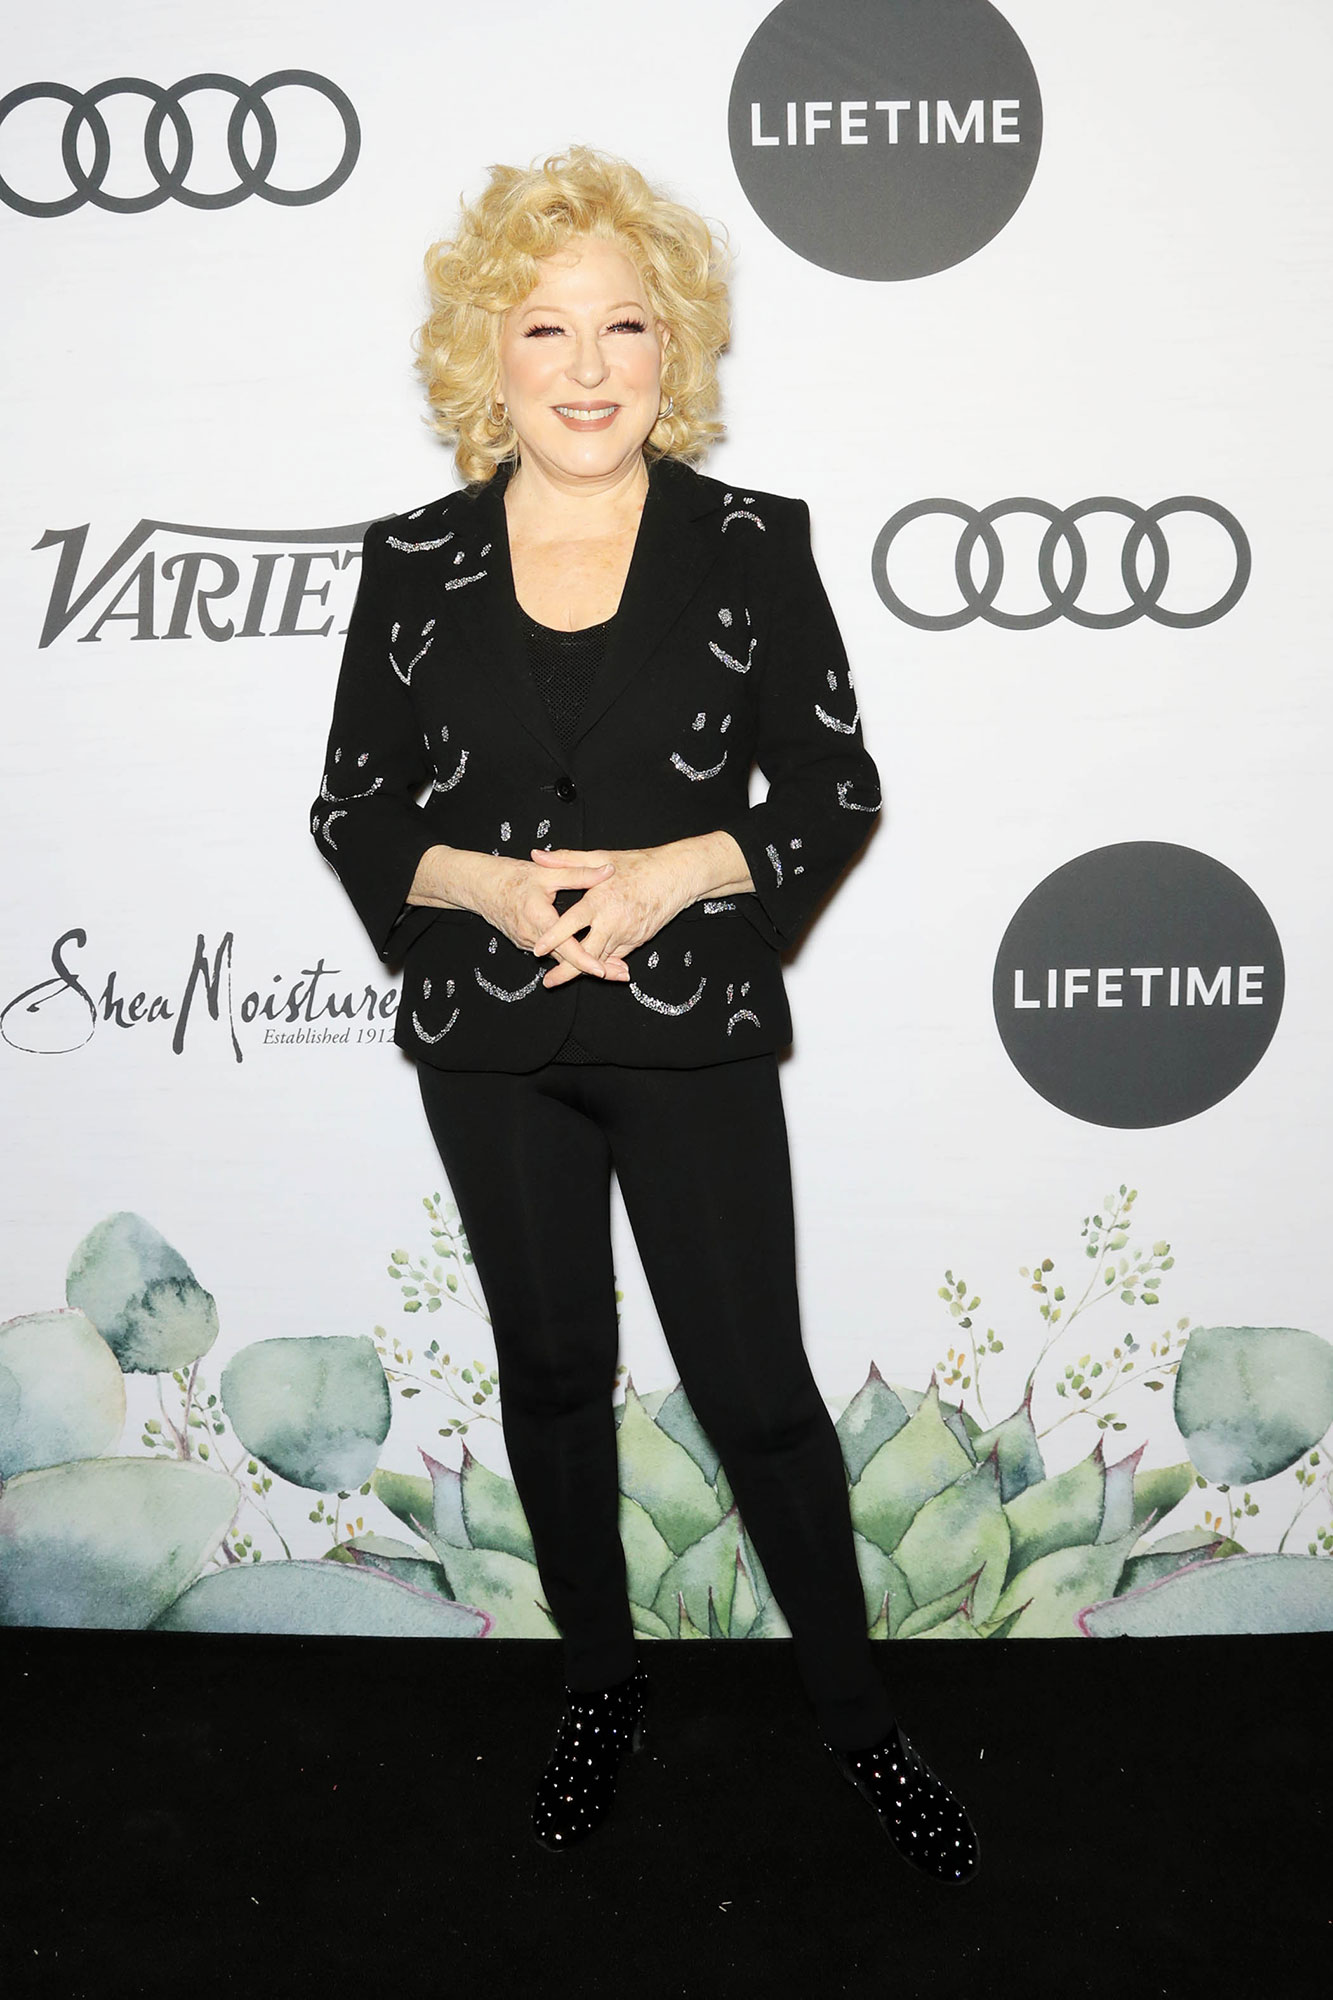 Bette Midler Variety's Power of Women - The Broadway star wore an all-black pantsuit with little silver smiley faces printed on the jacket.